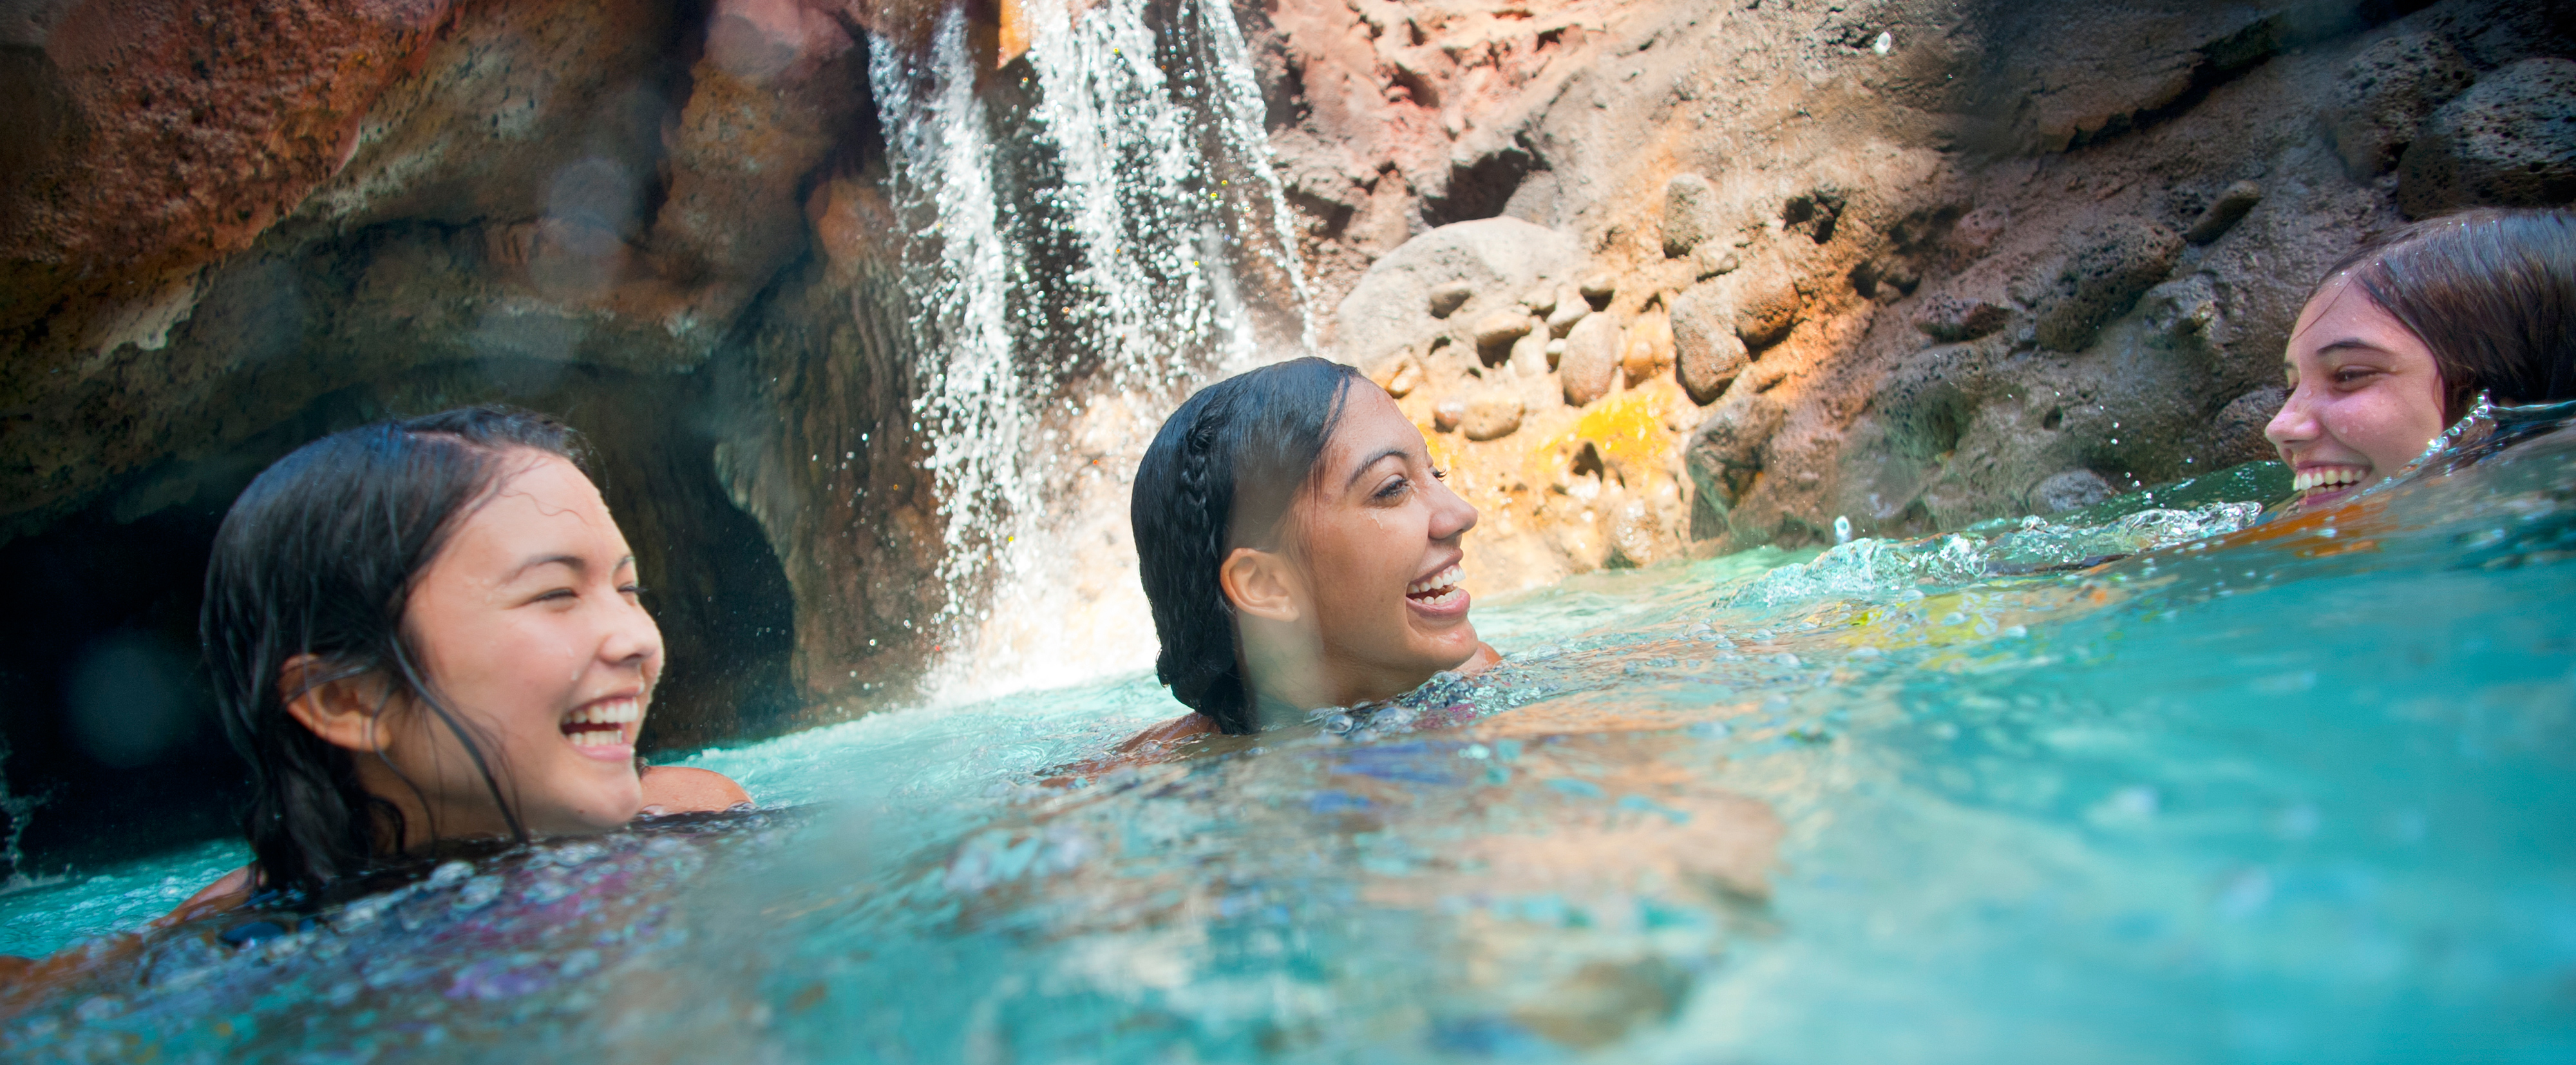 Three grinning teen girls are neck-deep in water in front of a grotto with a small waterfall